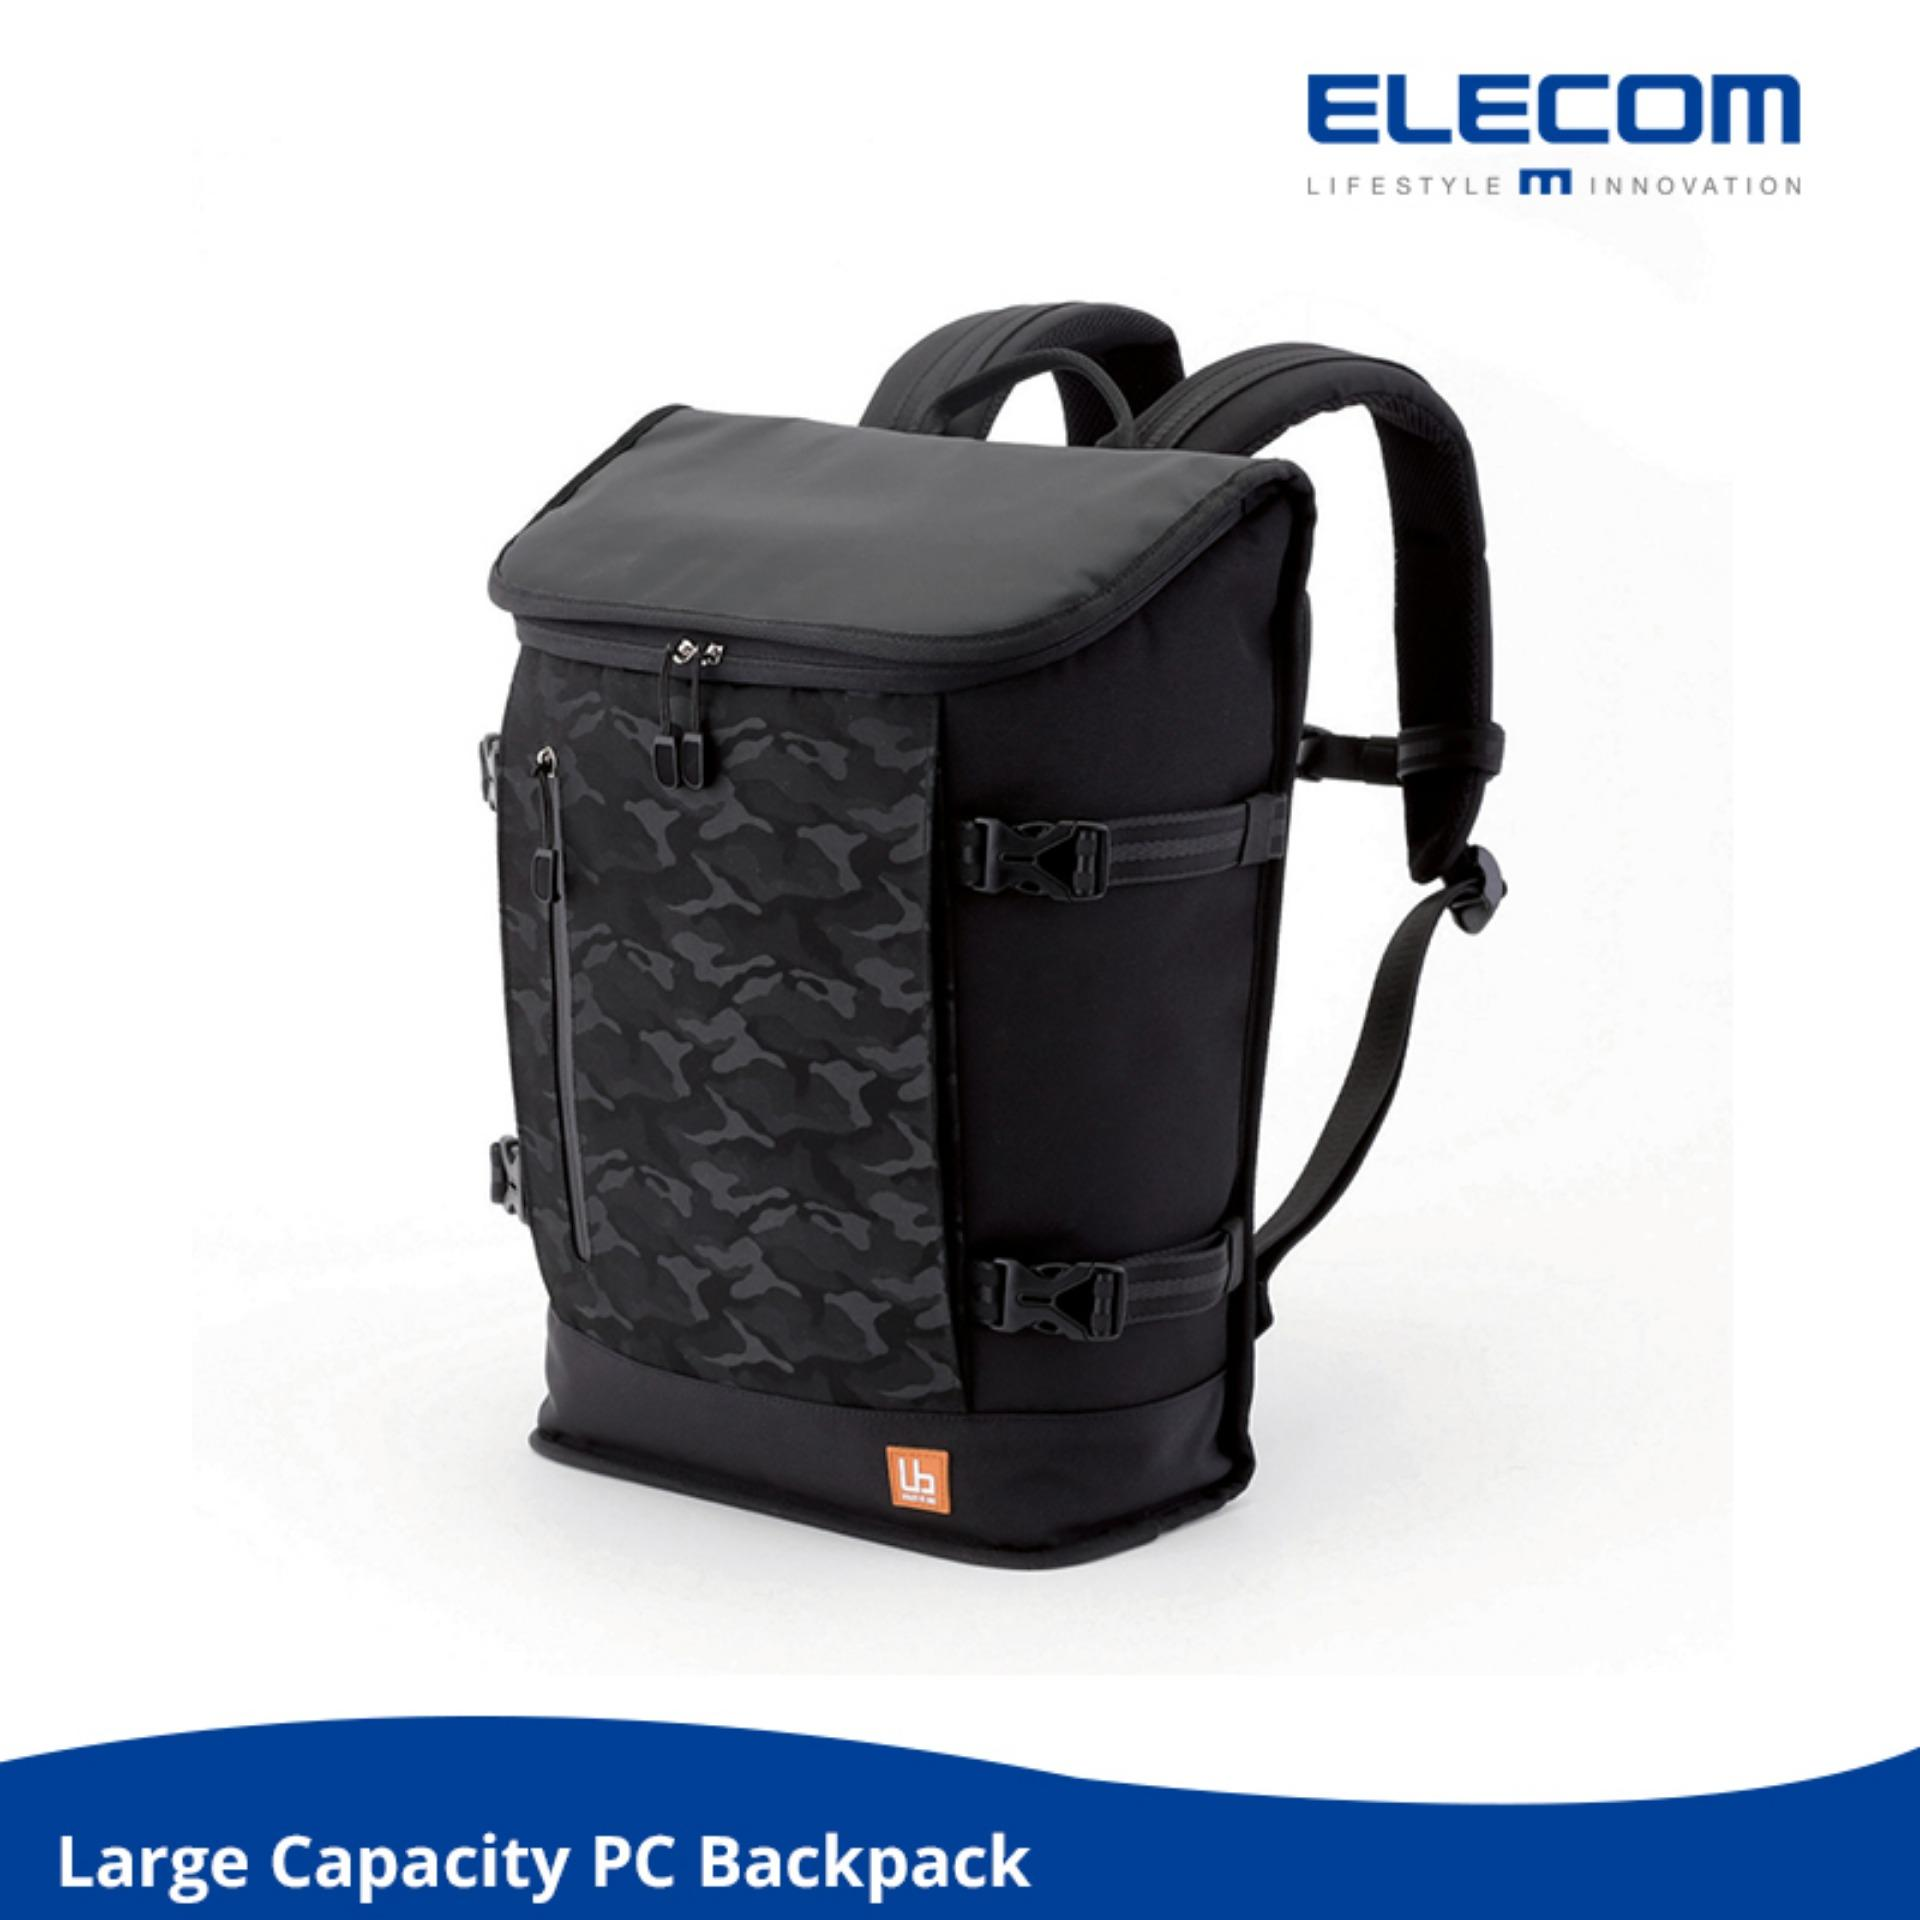 Elecom Large Capacity Stylish Laptop Backpack Water Resistant Casual Use Travel Use Elecom Cheap On Singapore